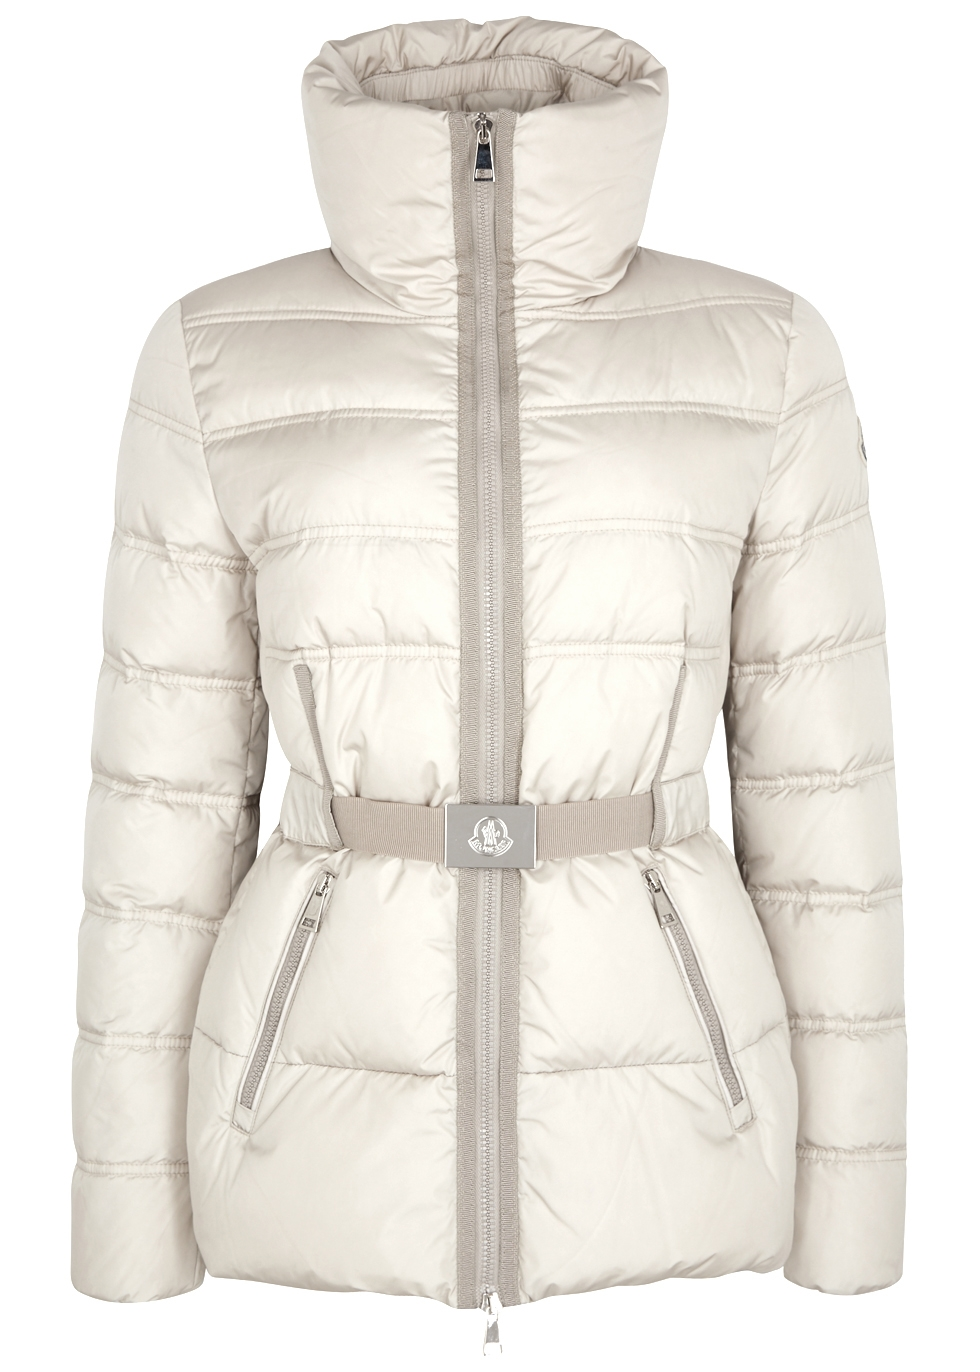 moncler jacket mens harvey nichols